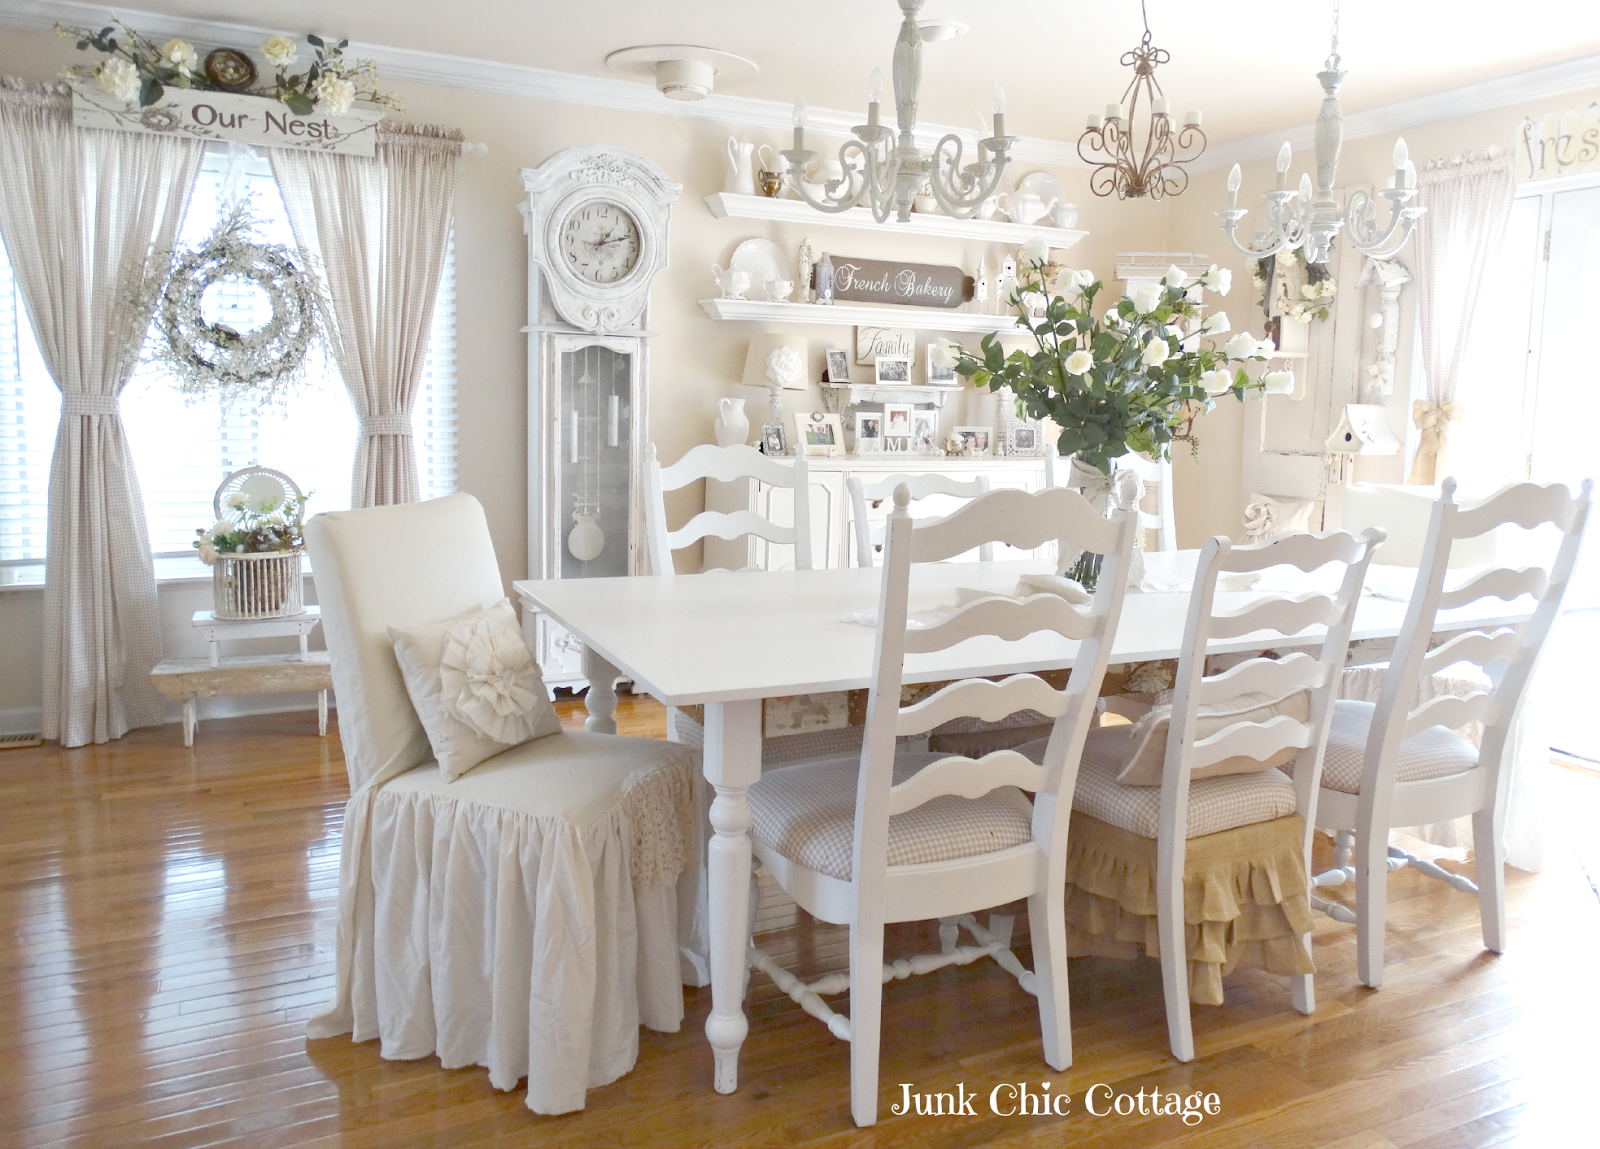 dining room reveal (junk chic cottage) | junk chic cottage